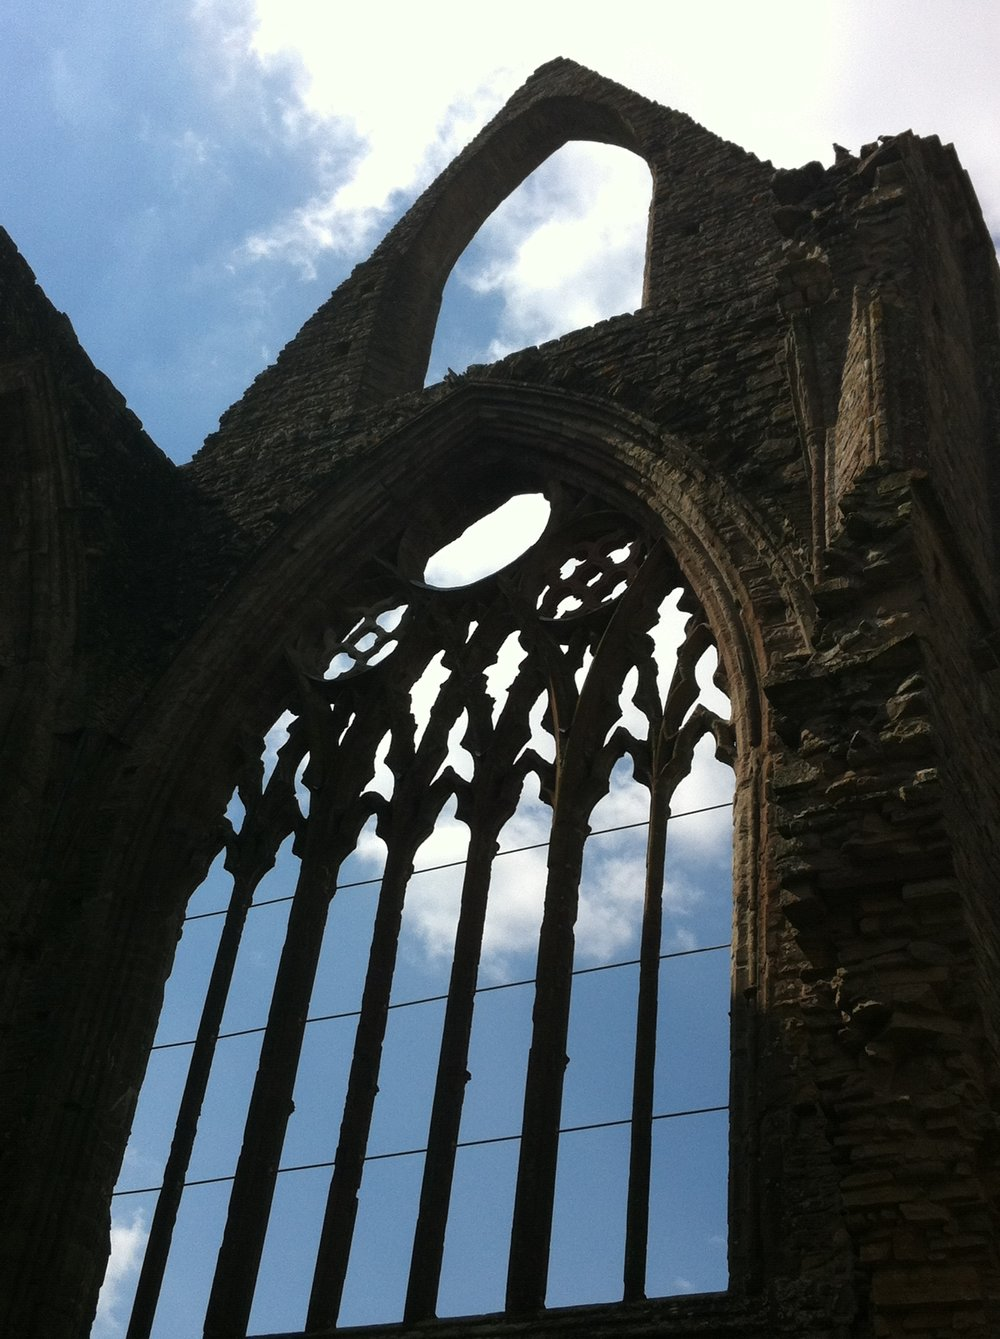 The imposing ruins of Tintern Abbey,